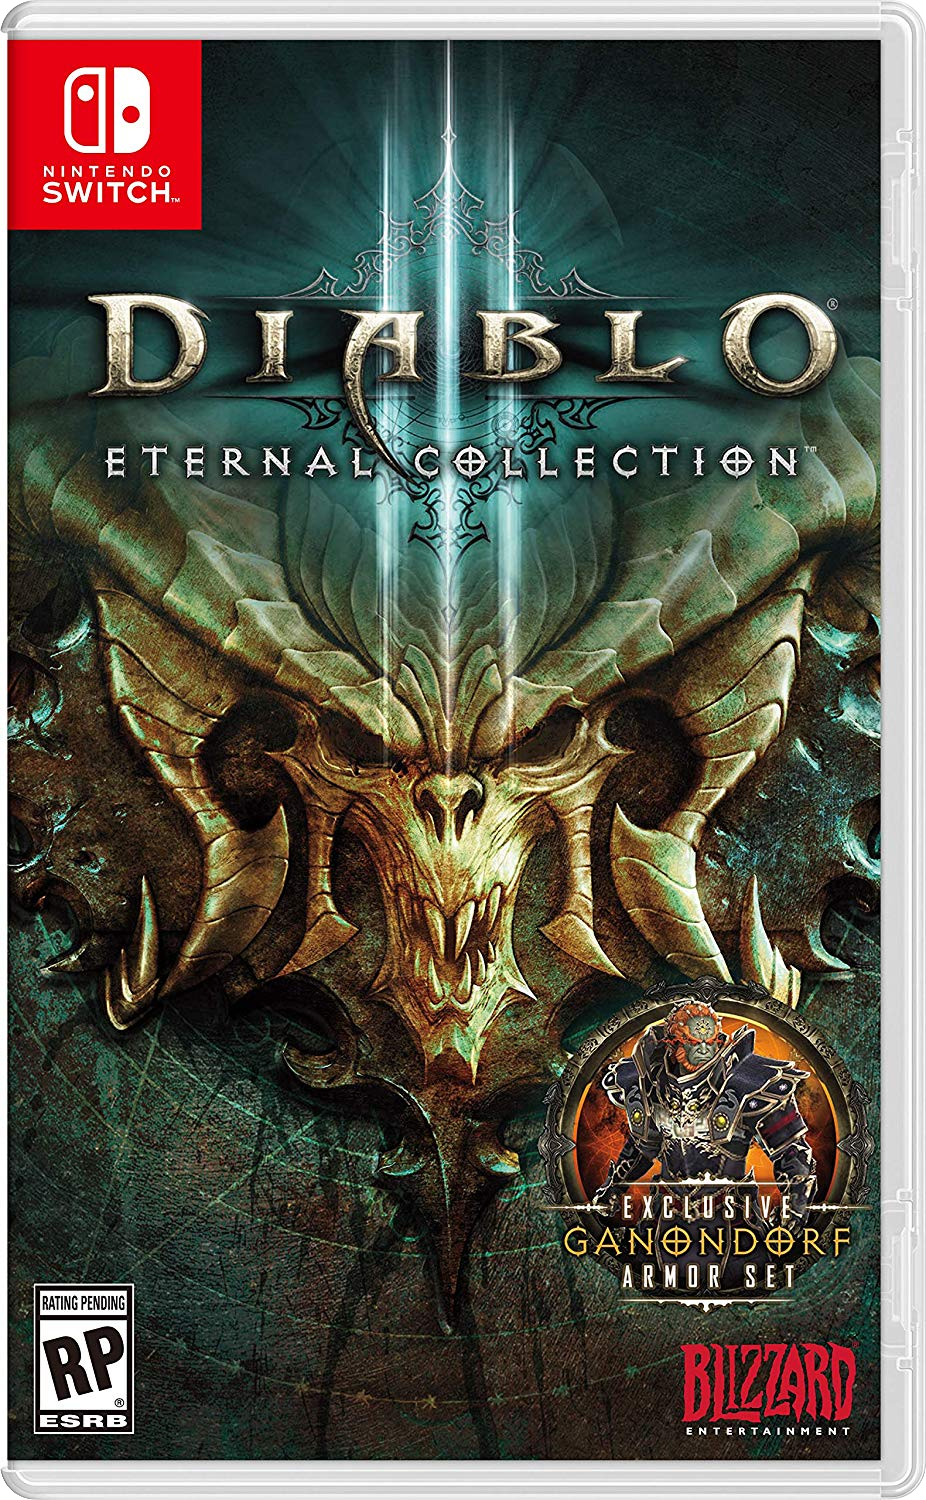 Diablo III: Eternal Collection | Diablo Wiki | FANDOM